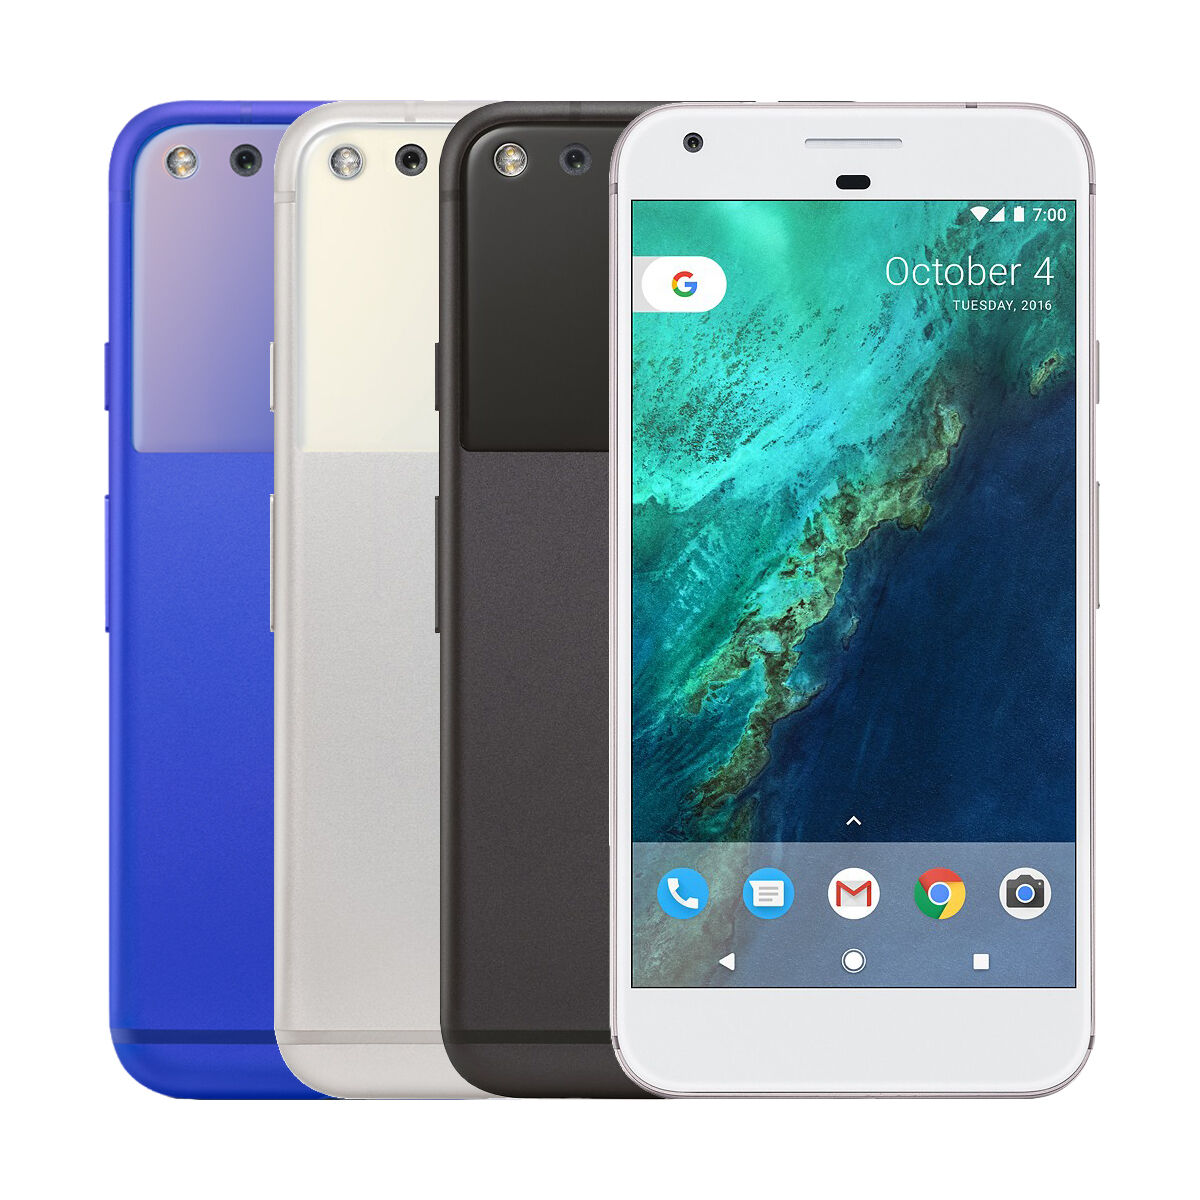 google-pixel-128gb-verizon-wireless-4g-lte-android-wifi-smartphone